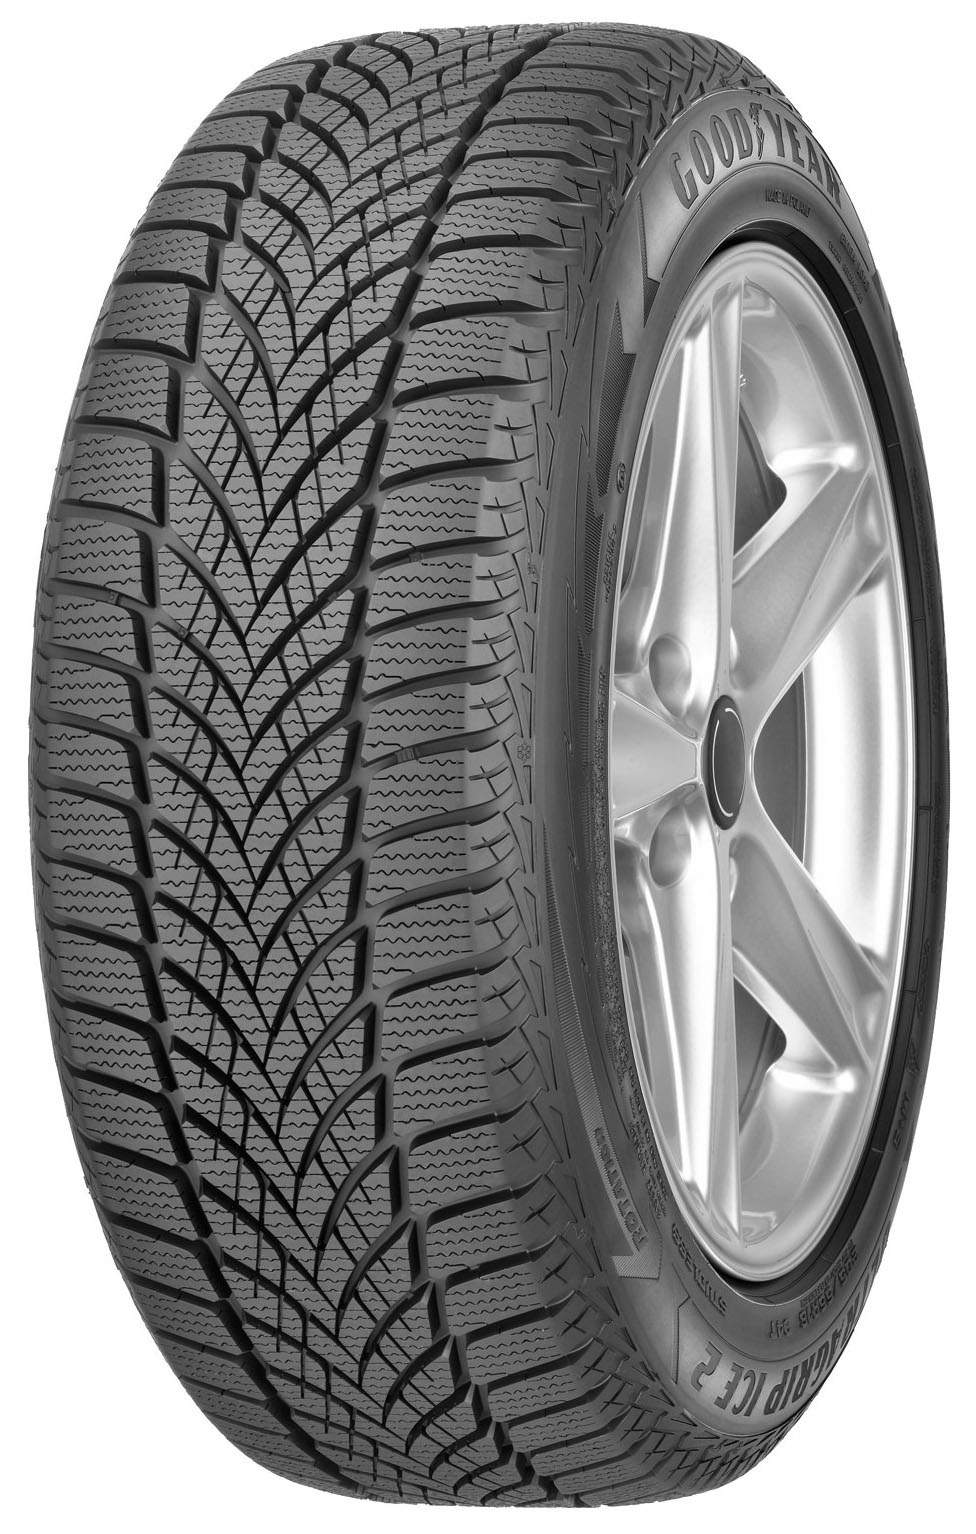 Автошина R15 205/65 Goodyear UltraGrip Ice 2 99T (зима)